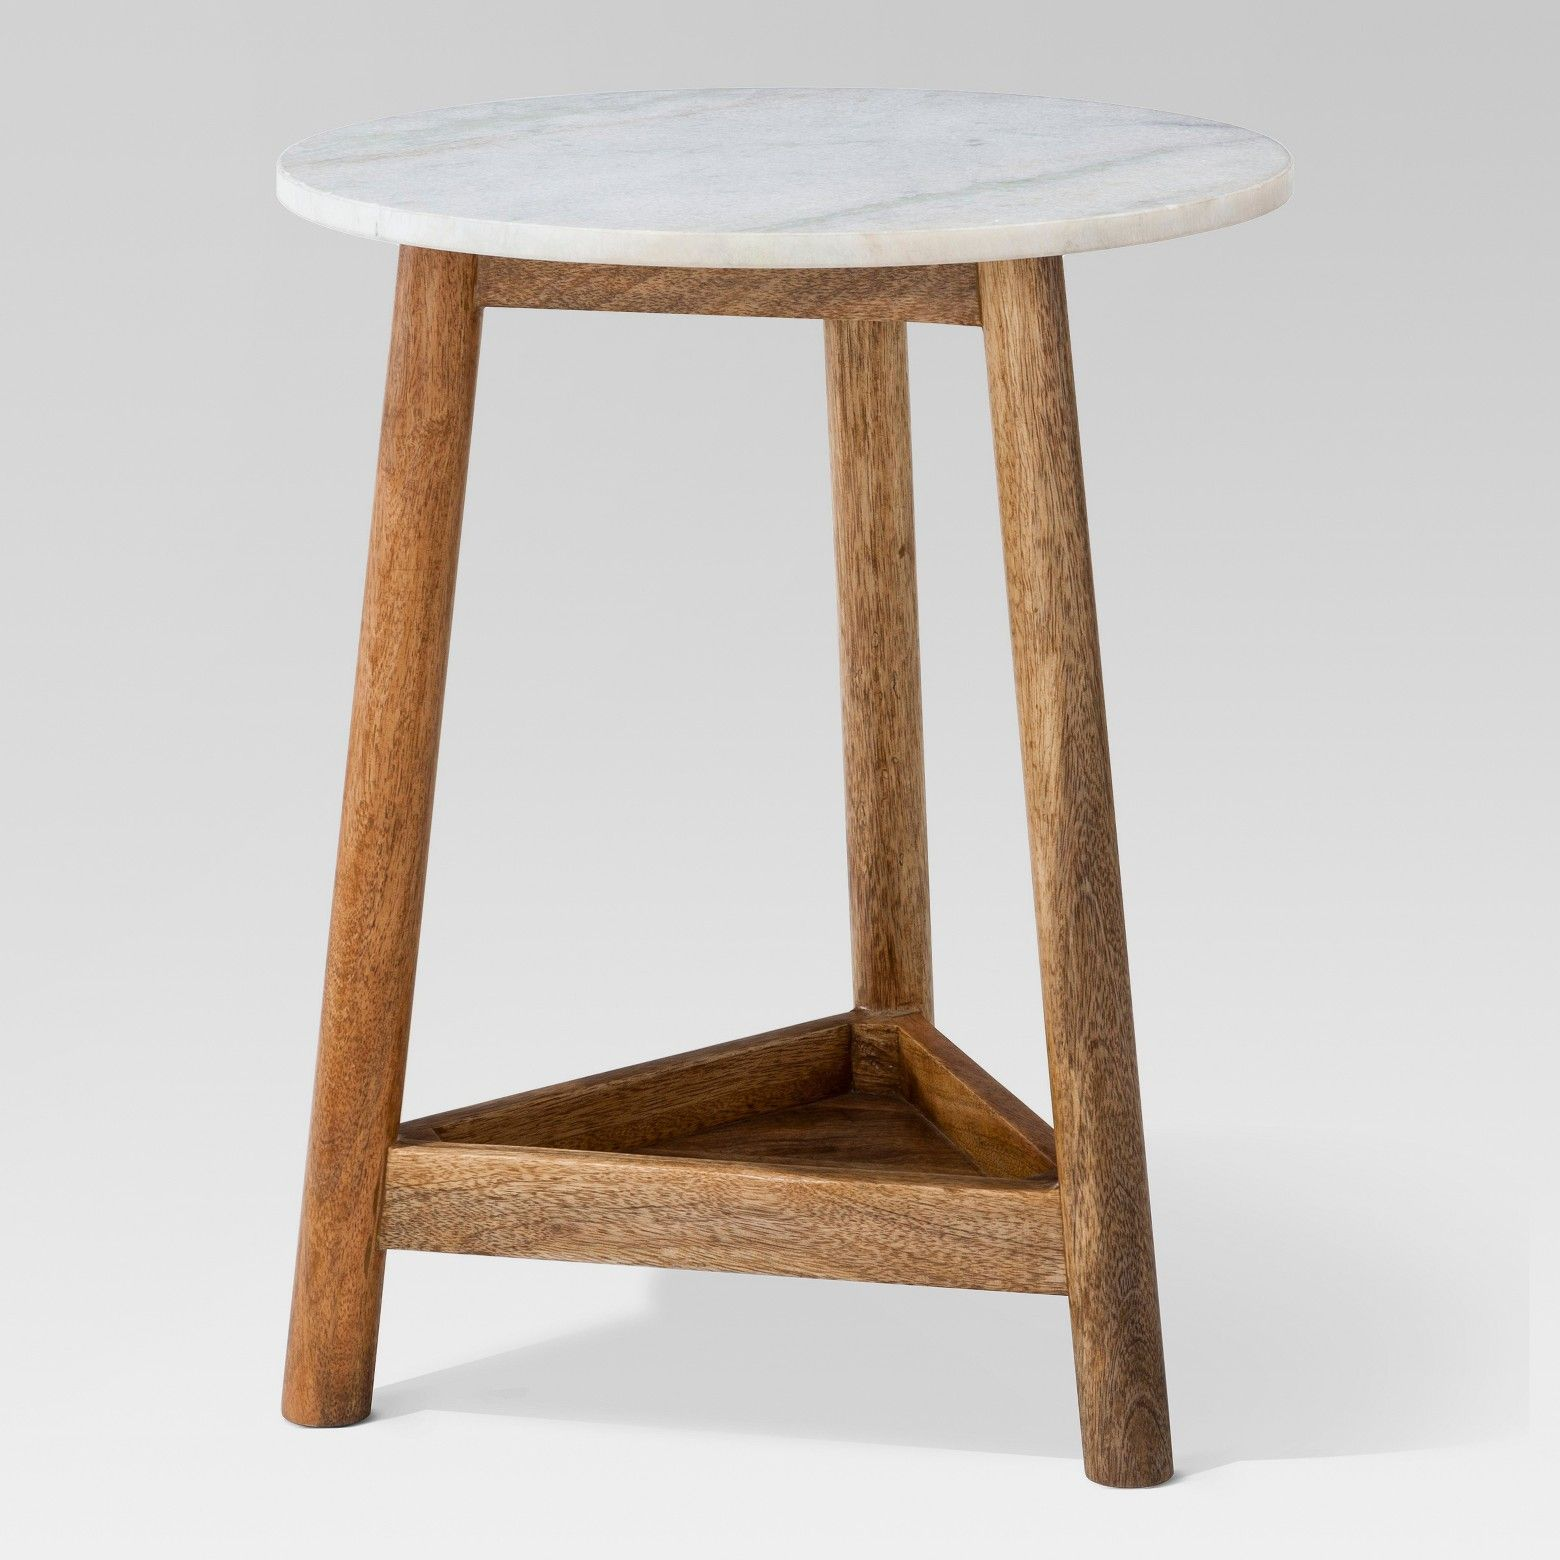 the lanham marble top side table from threshold has beautiful accent blend mango wood and instantly becoming focal point any room you place round silver tall drum throne farmhouse